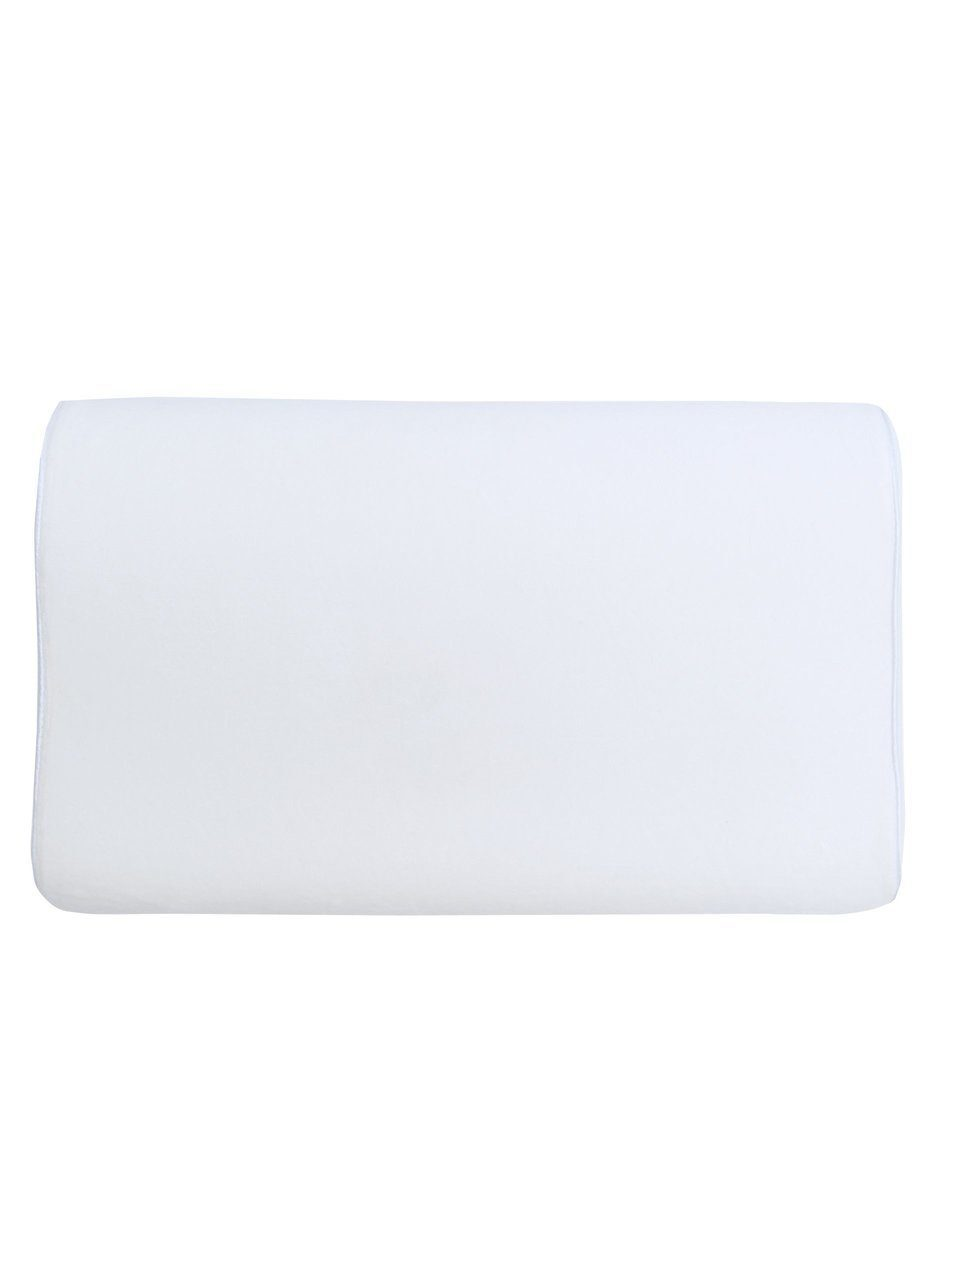 Подушка AMARO HOME Memory Foam Massage  60х38х12/10 см.